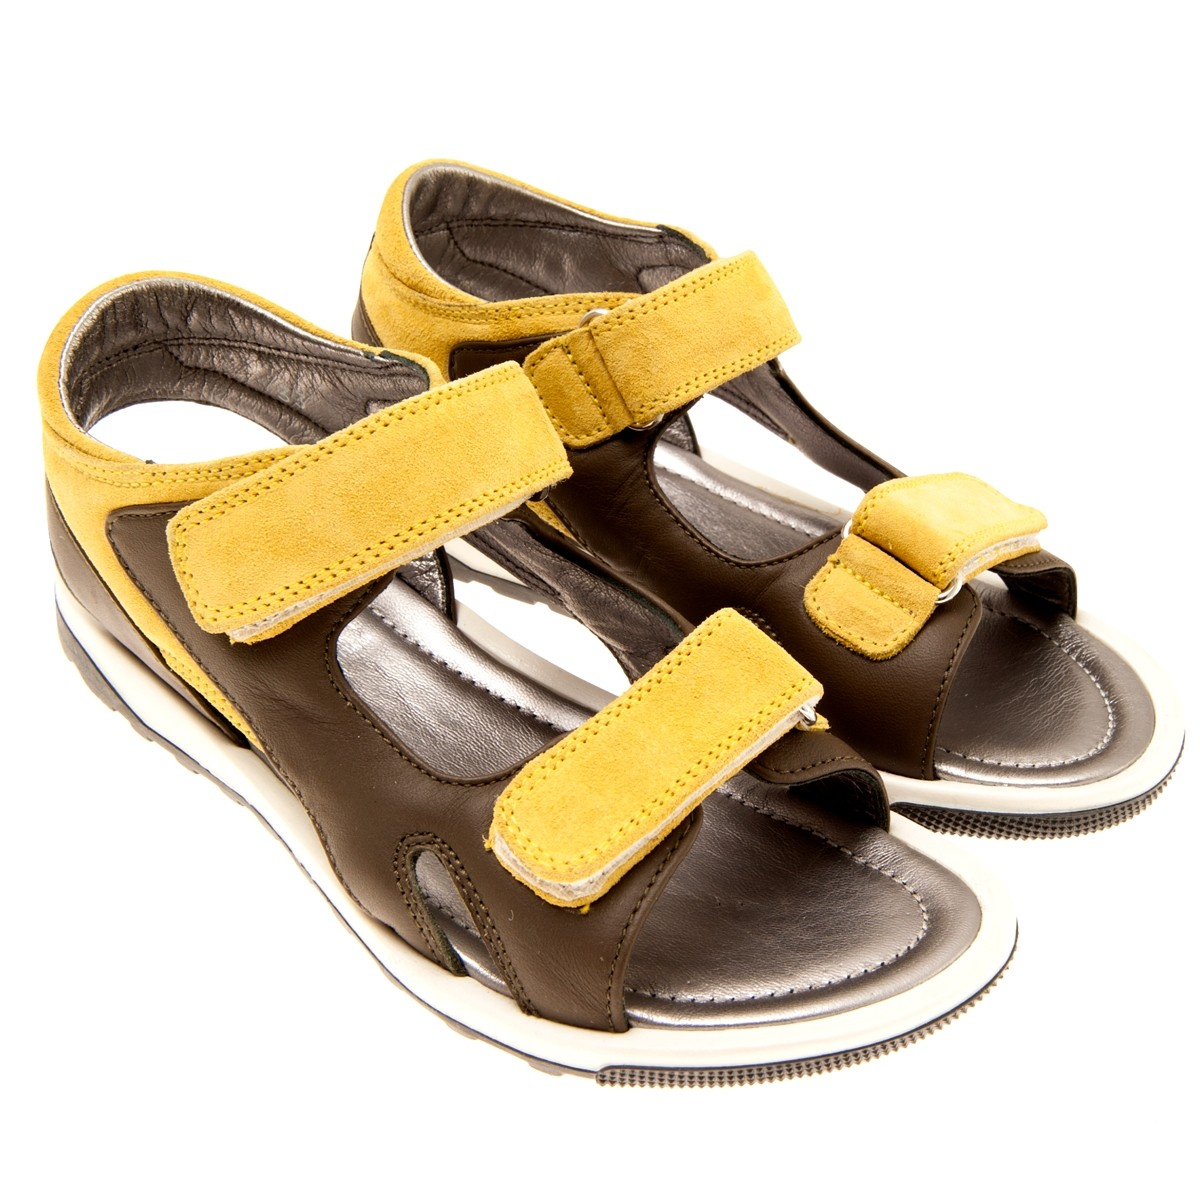 43423e66f8fa9 Mustard   Olive color Leather sued Boys Sandals. From Young Versace